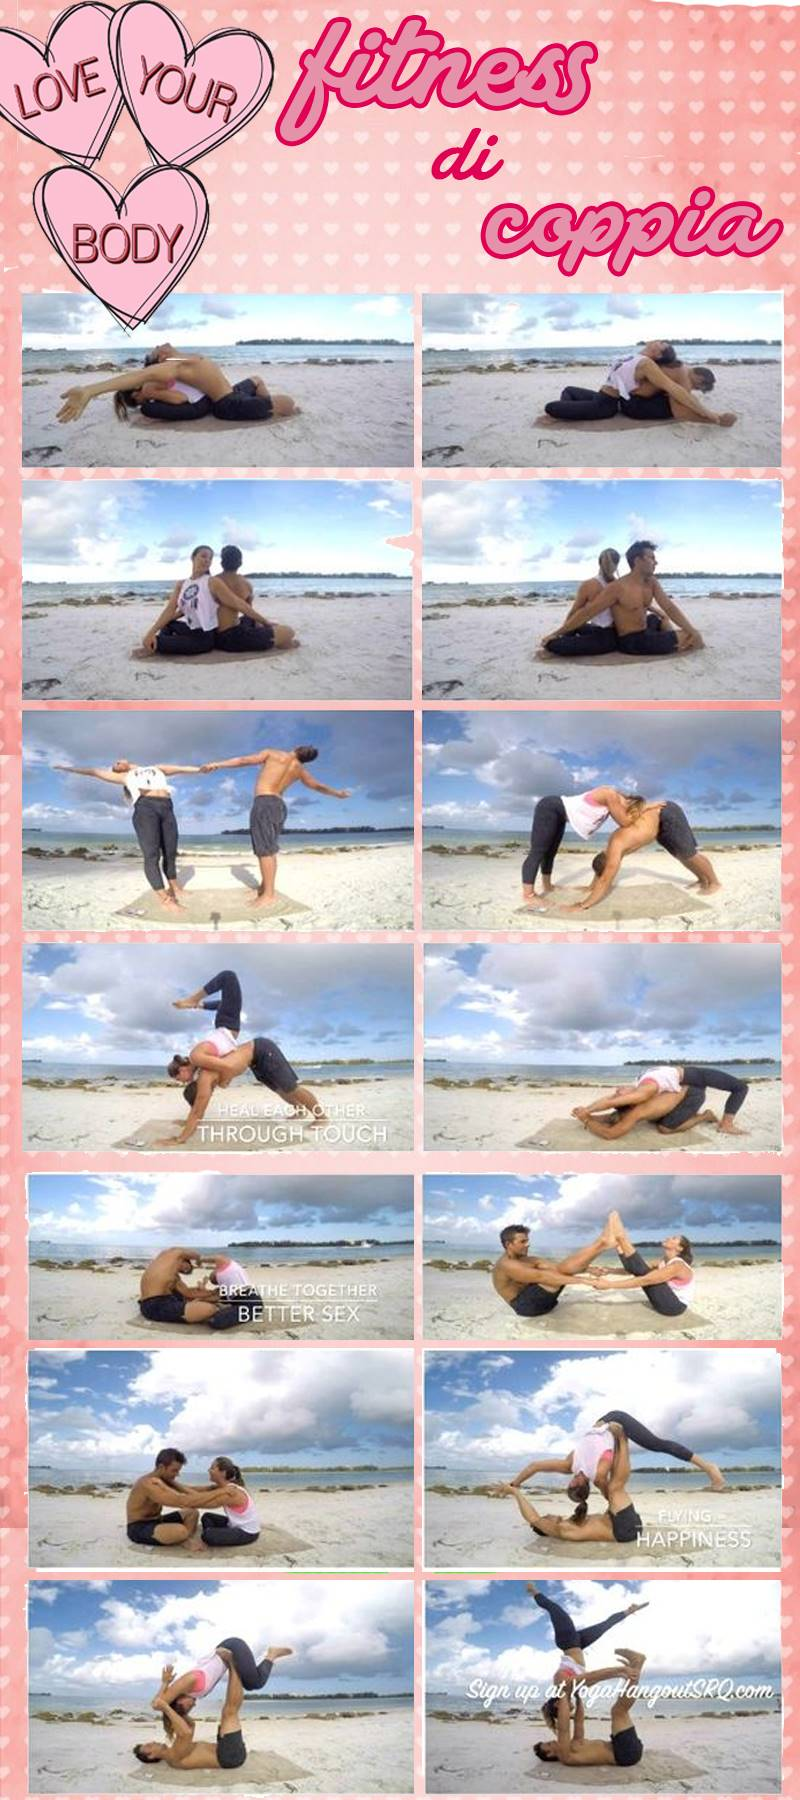 Love workout yoga in coppia